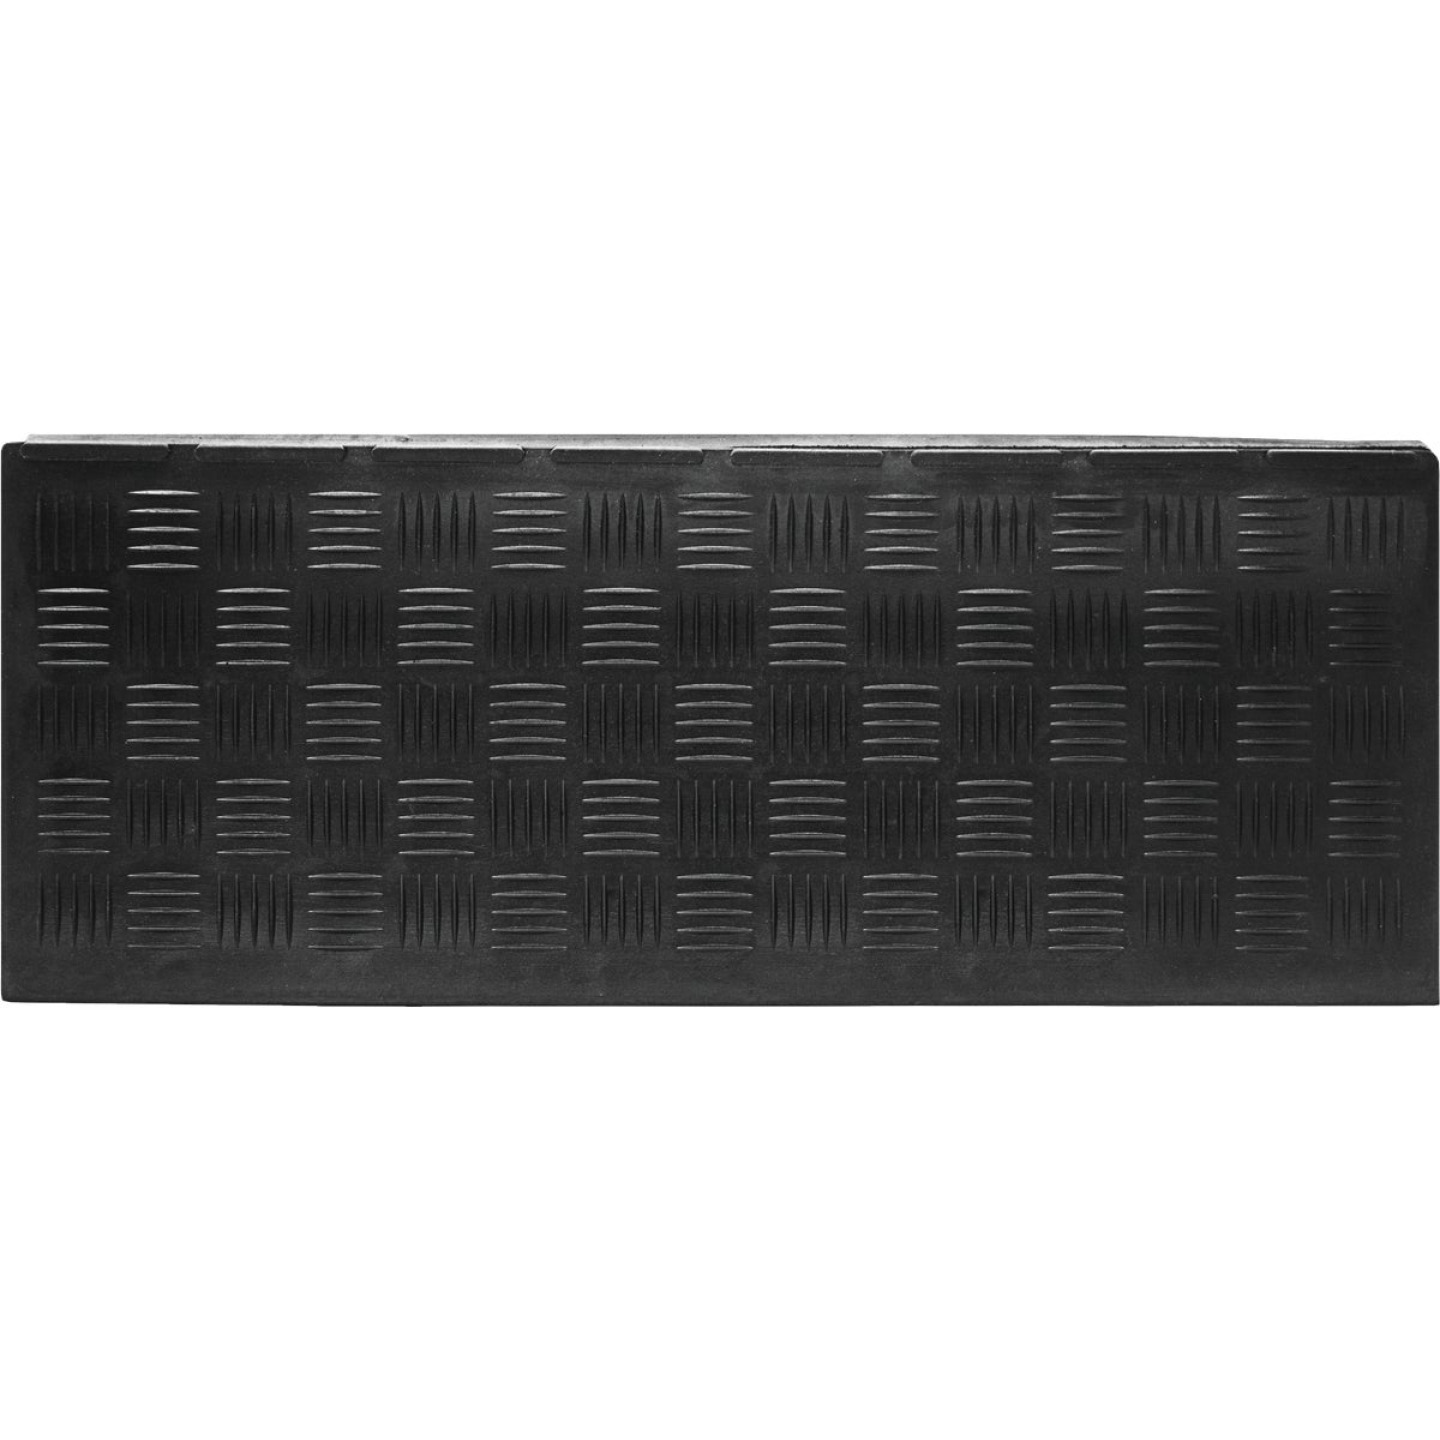 Multy Home Black 9 In. x 24 In. Rubber Stair Tread Image 1